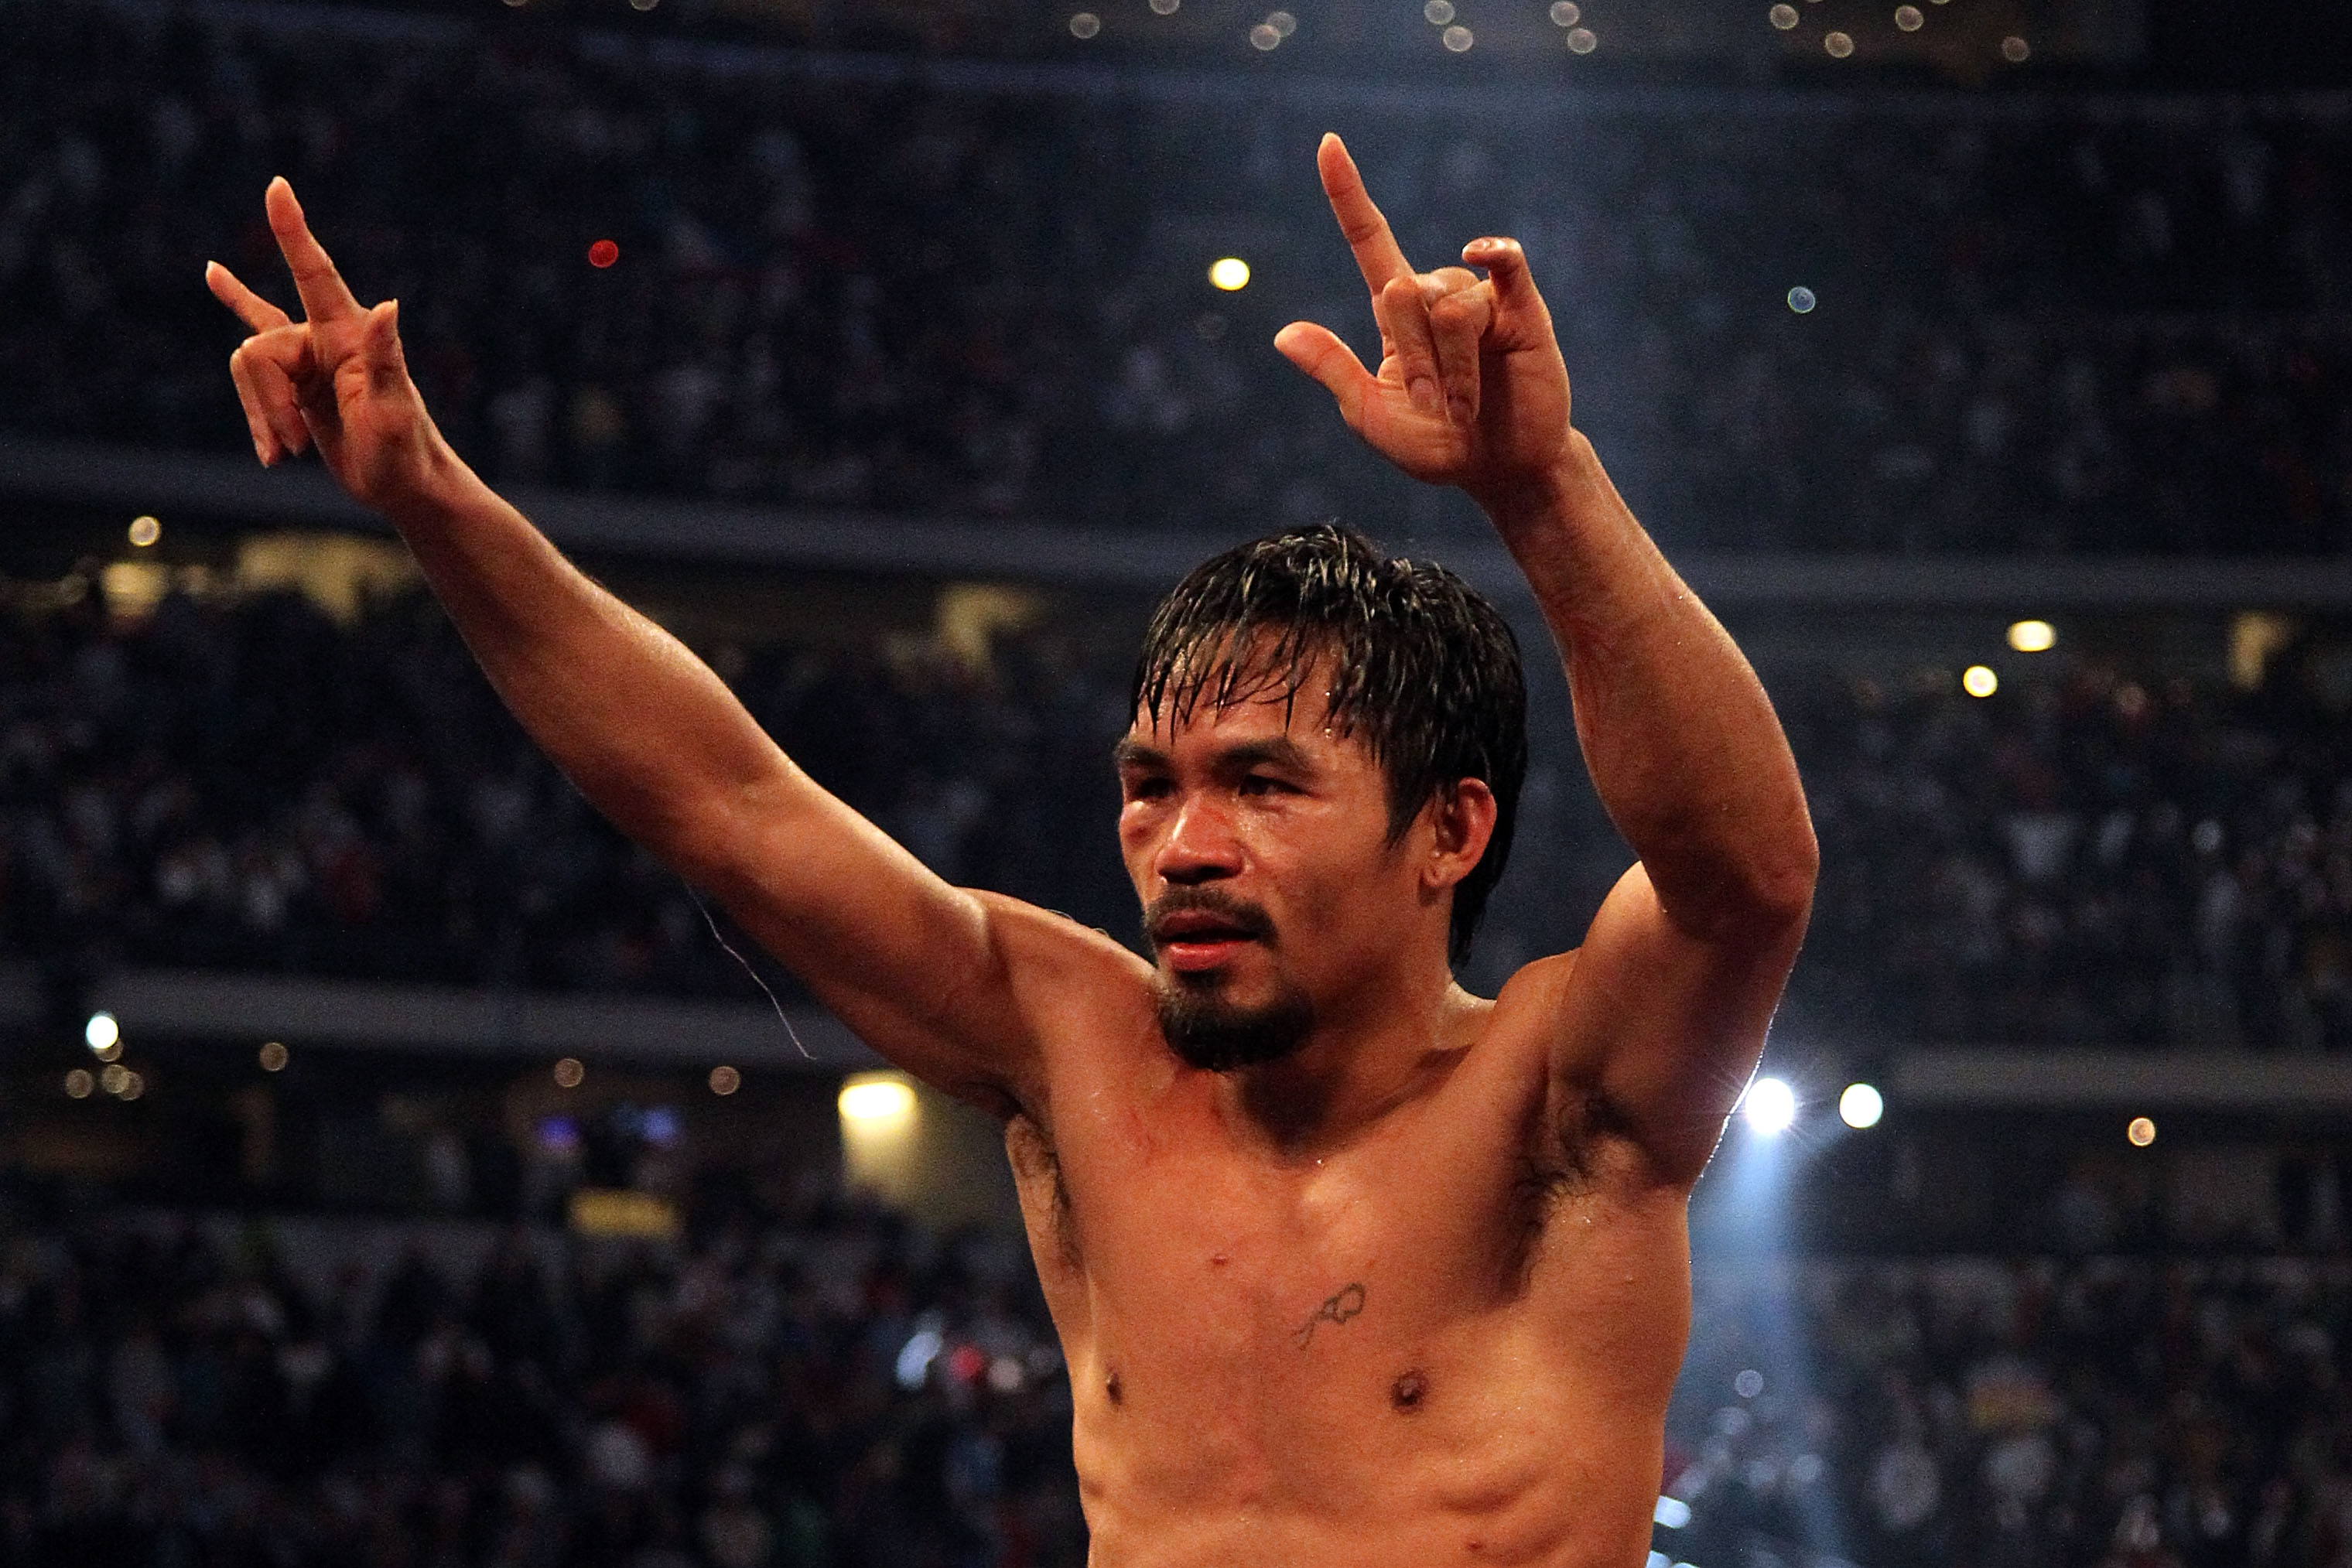 ARLINGTON, TX - MARCH 13:  Manny Pacquiao of the Philippines celebrates in the ring after defeating Joshua Clottey of Ghana during the WBO welterweight title fight at Cowboys Stadium on March 13, 2010 in Arlington, Texas. Pacquiao defeated Clottey by unan